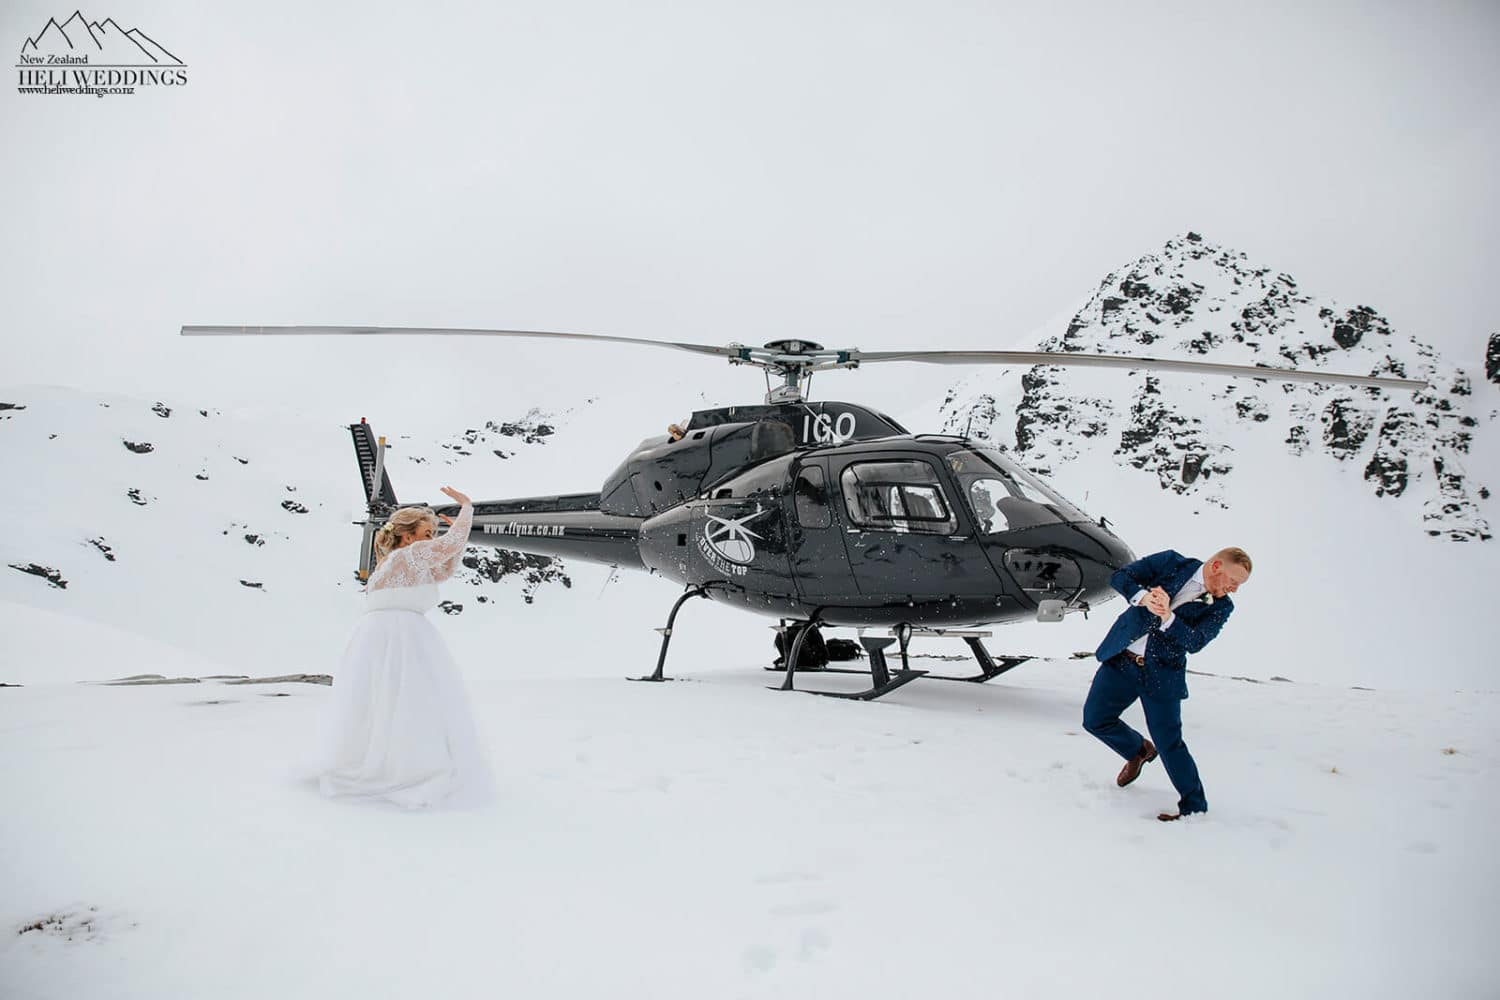 Snowball fight on your wedding day